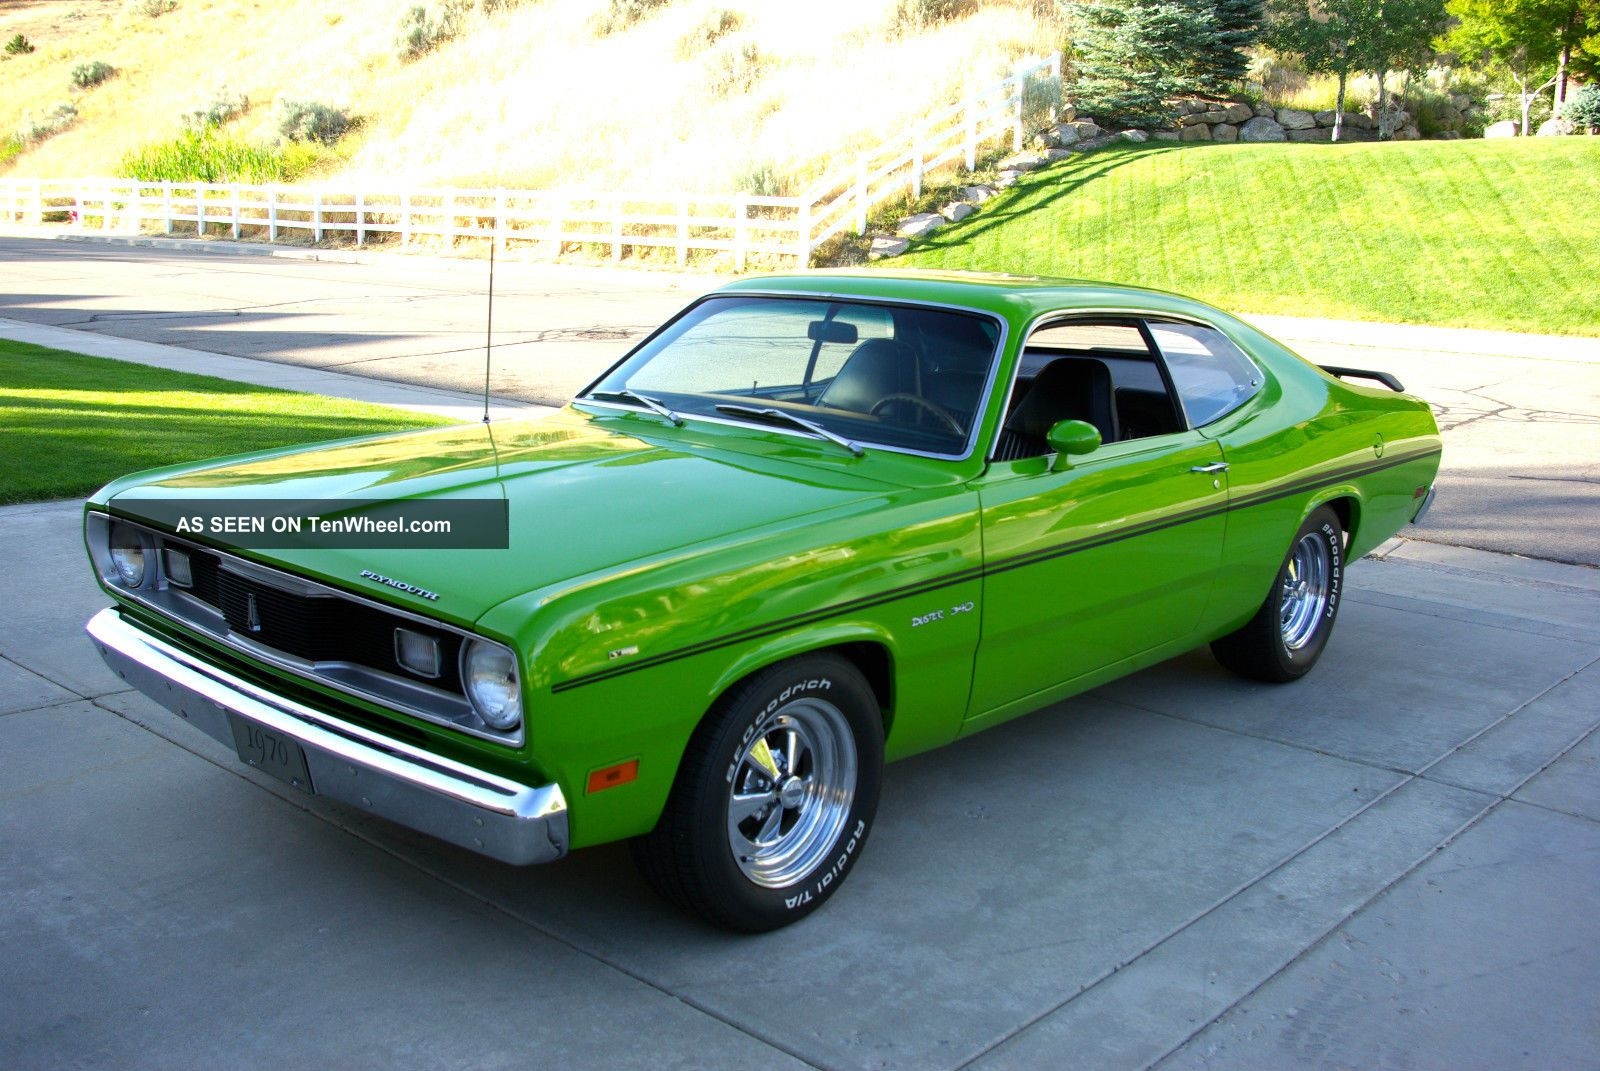 1970 Plymouth Duster 340 - Numbers Matching Duster photo